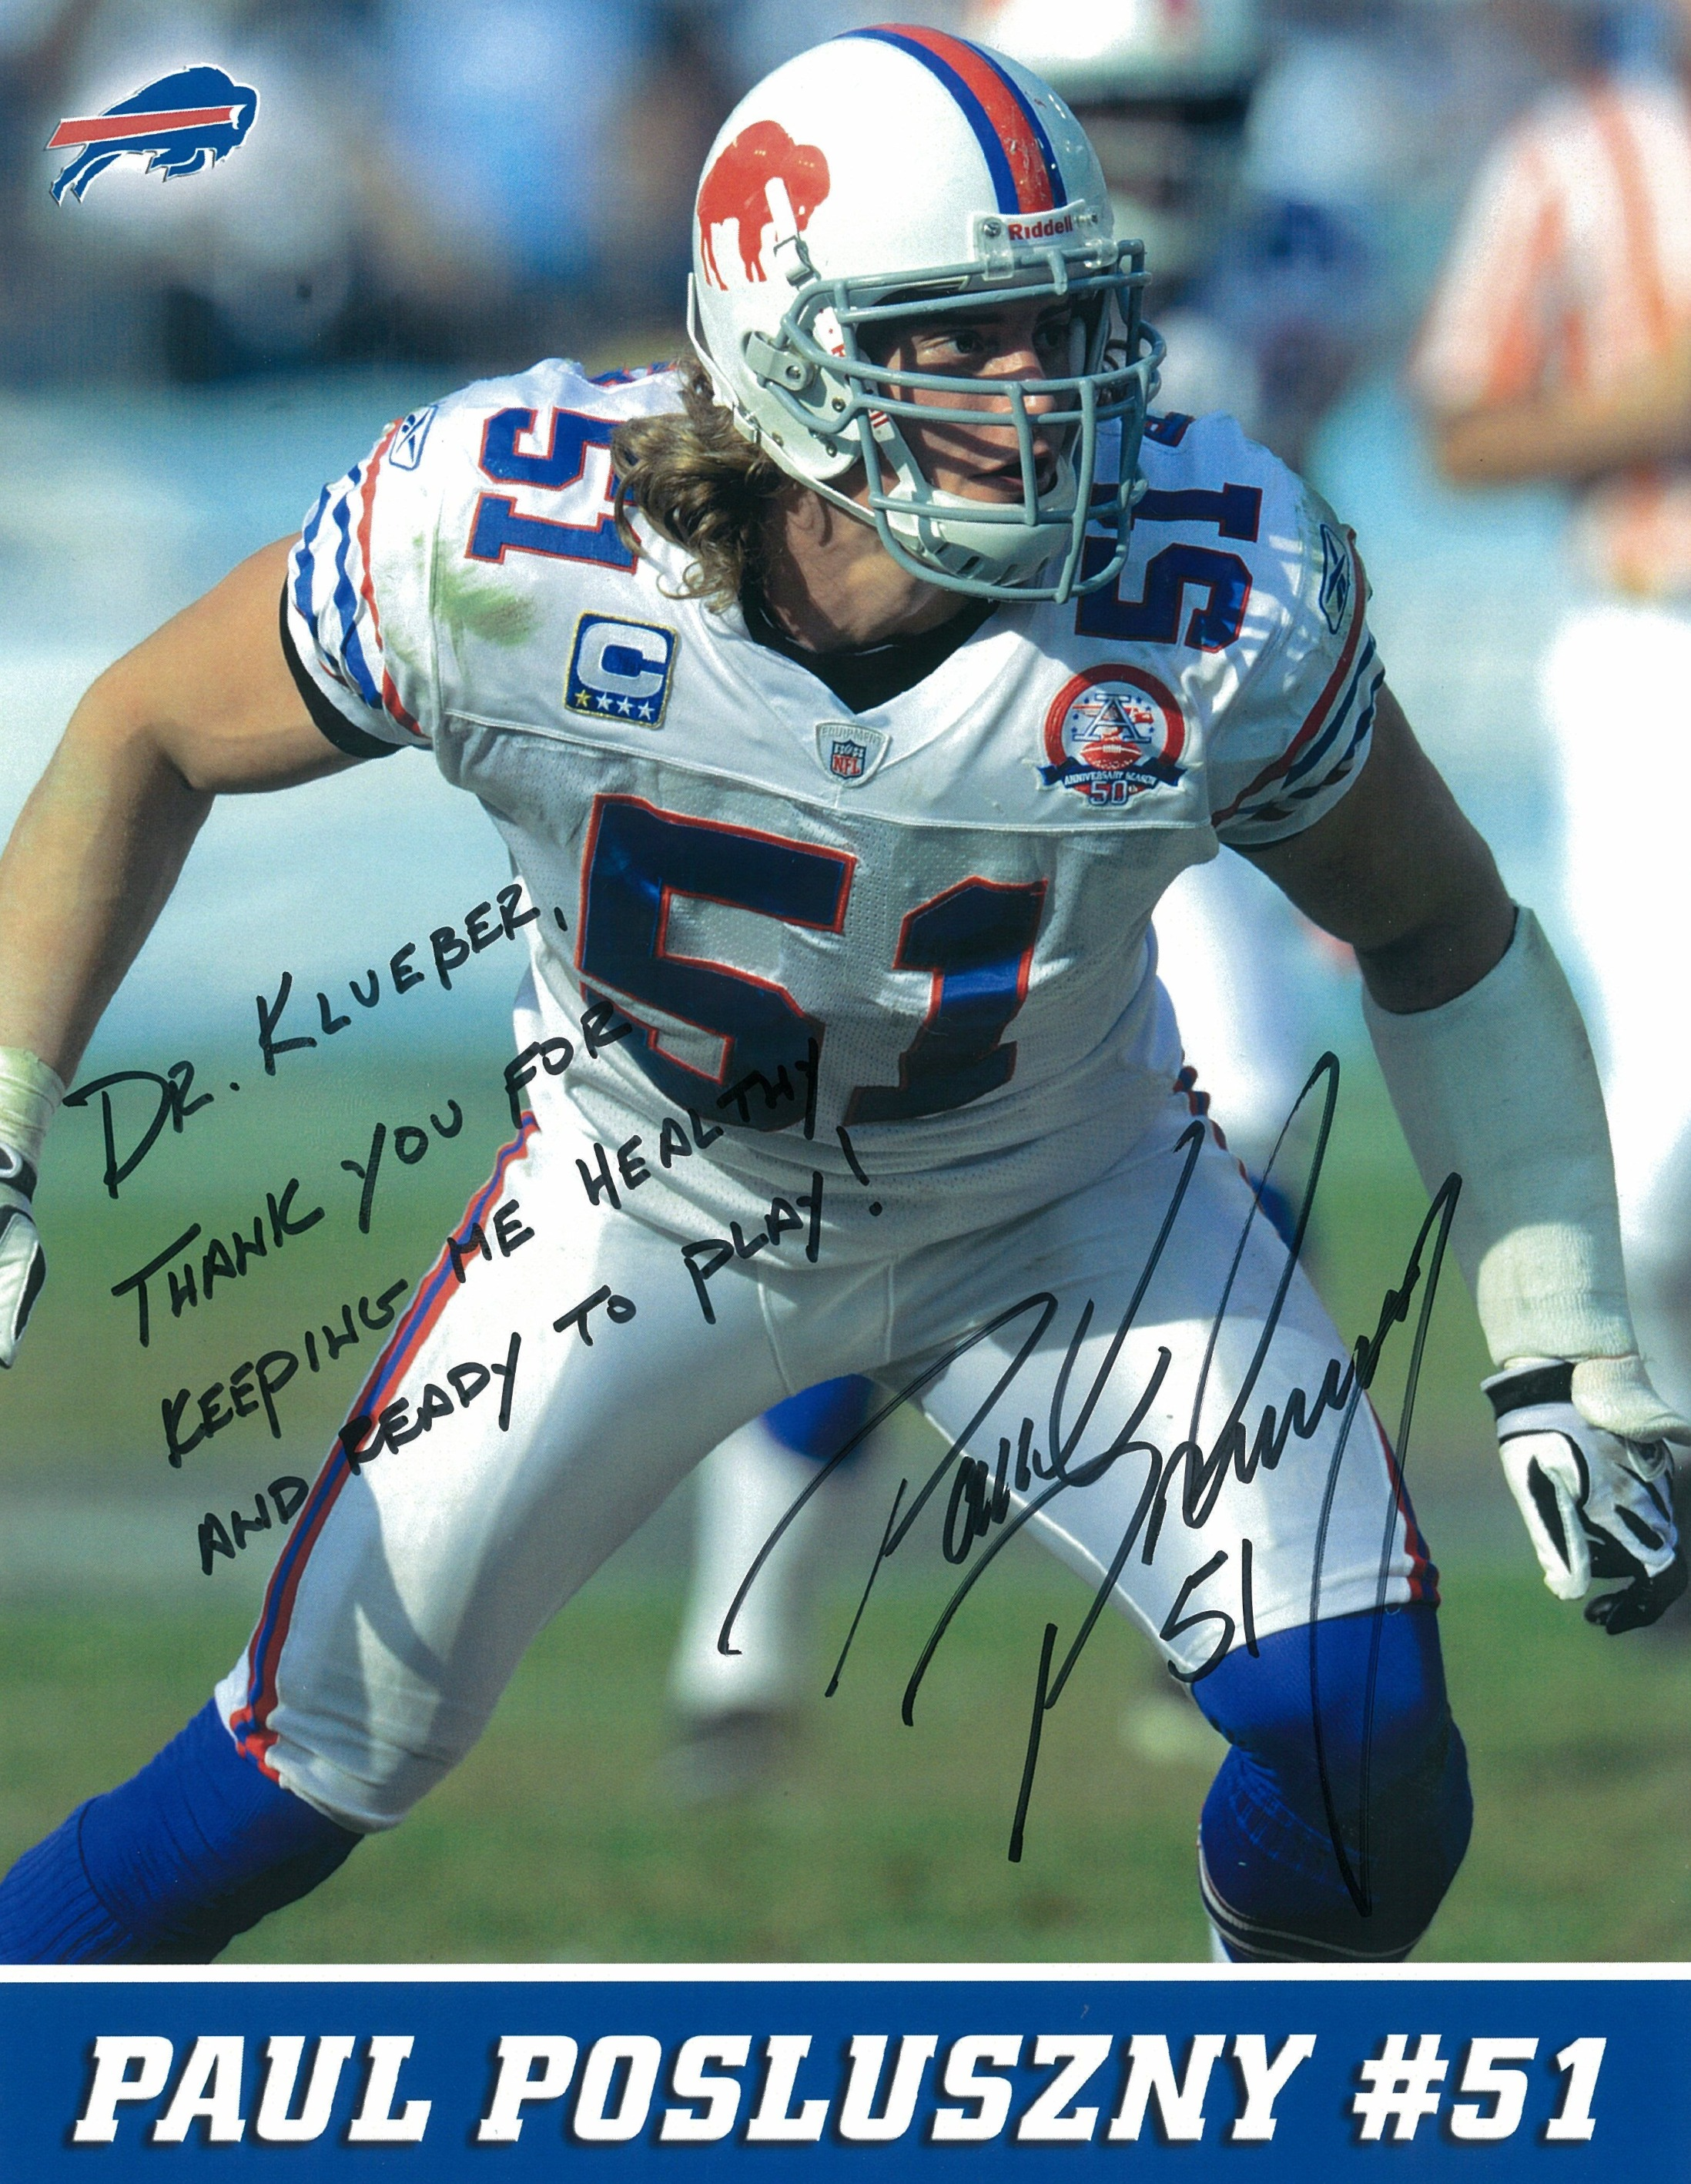 Paul Posluszny, #51 of the Buffalo Bills